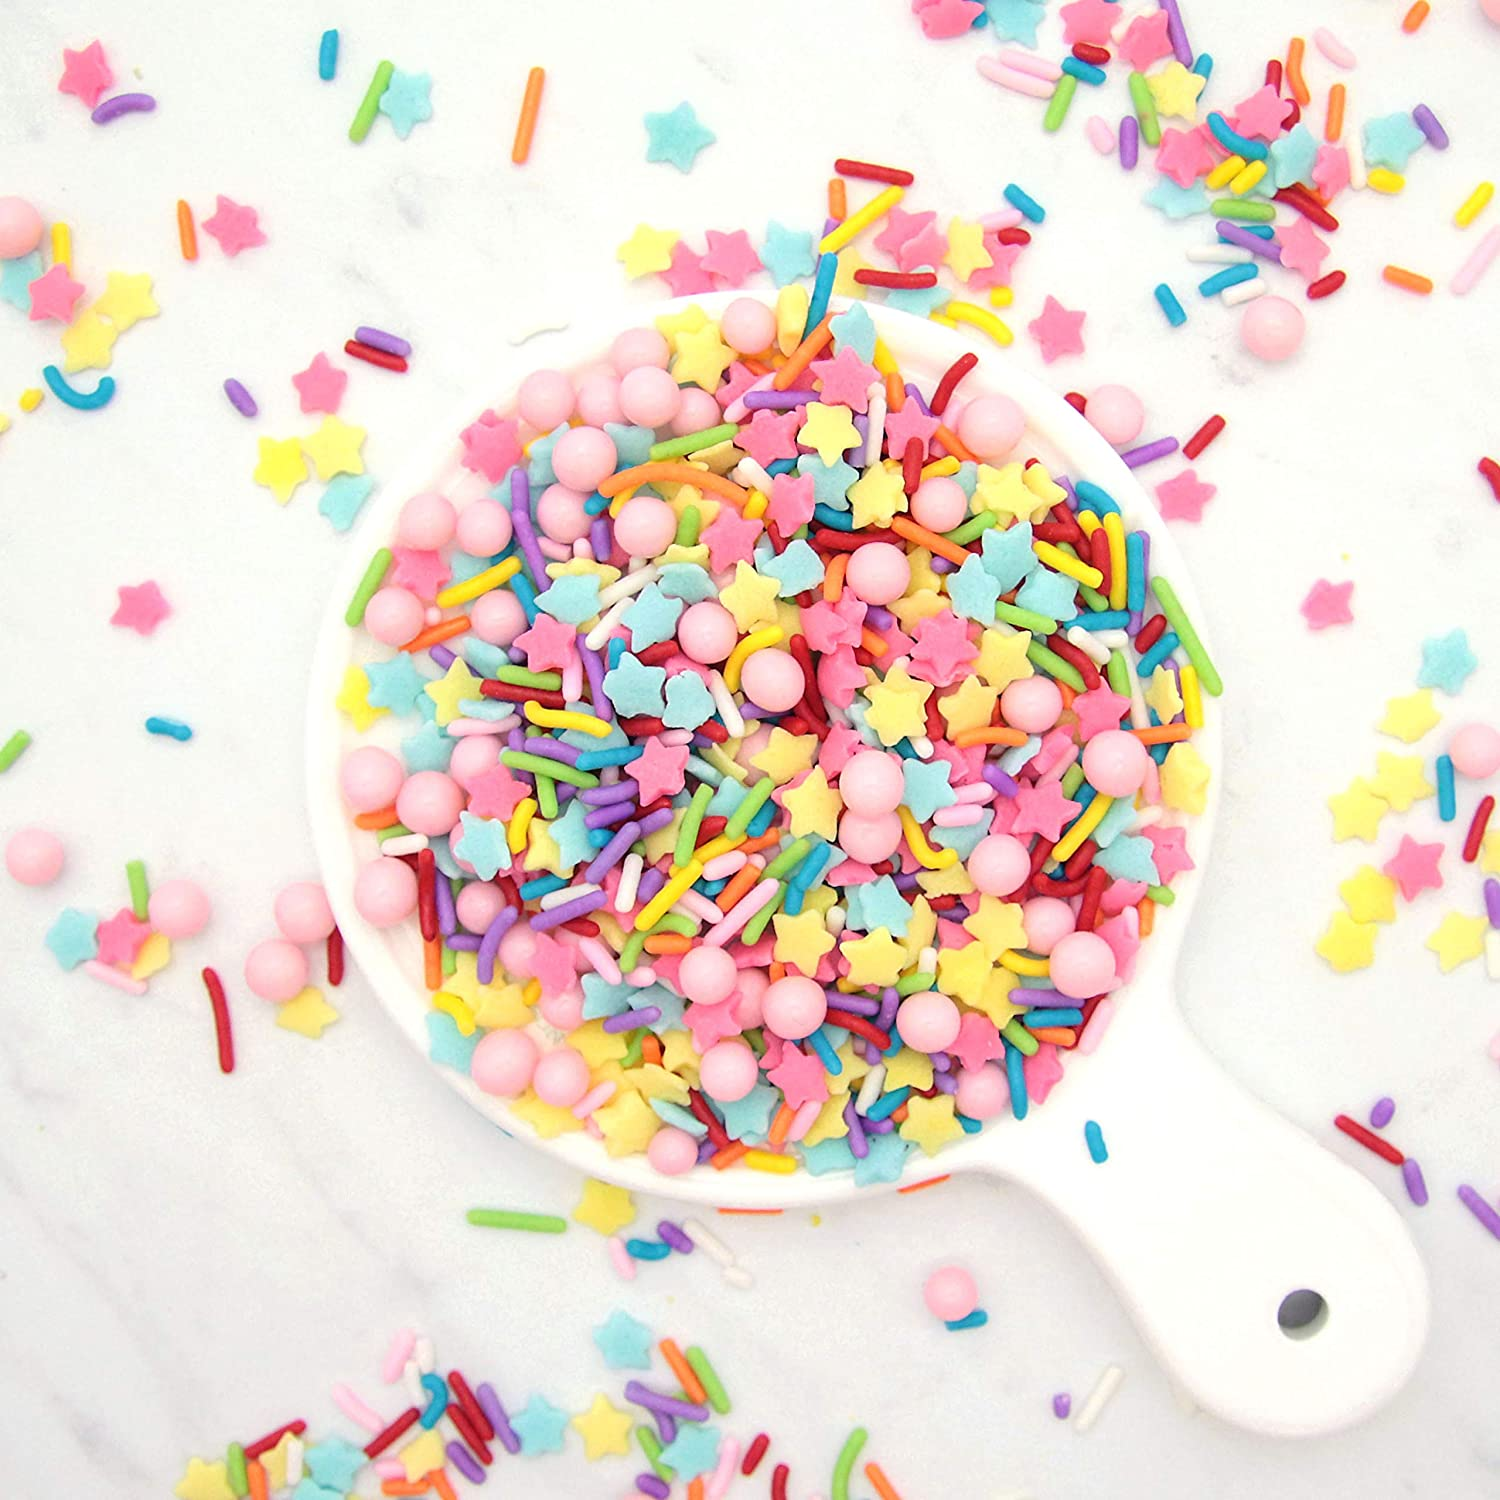 Whimsical Birthday Fashionable Party Sprinkle Mix lbs. New popularity Bulk 5